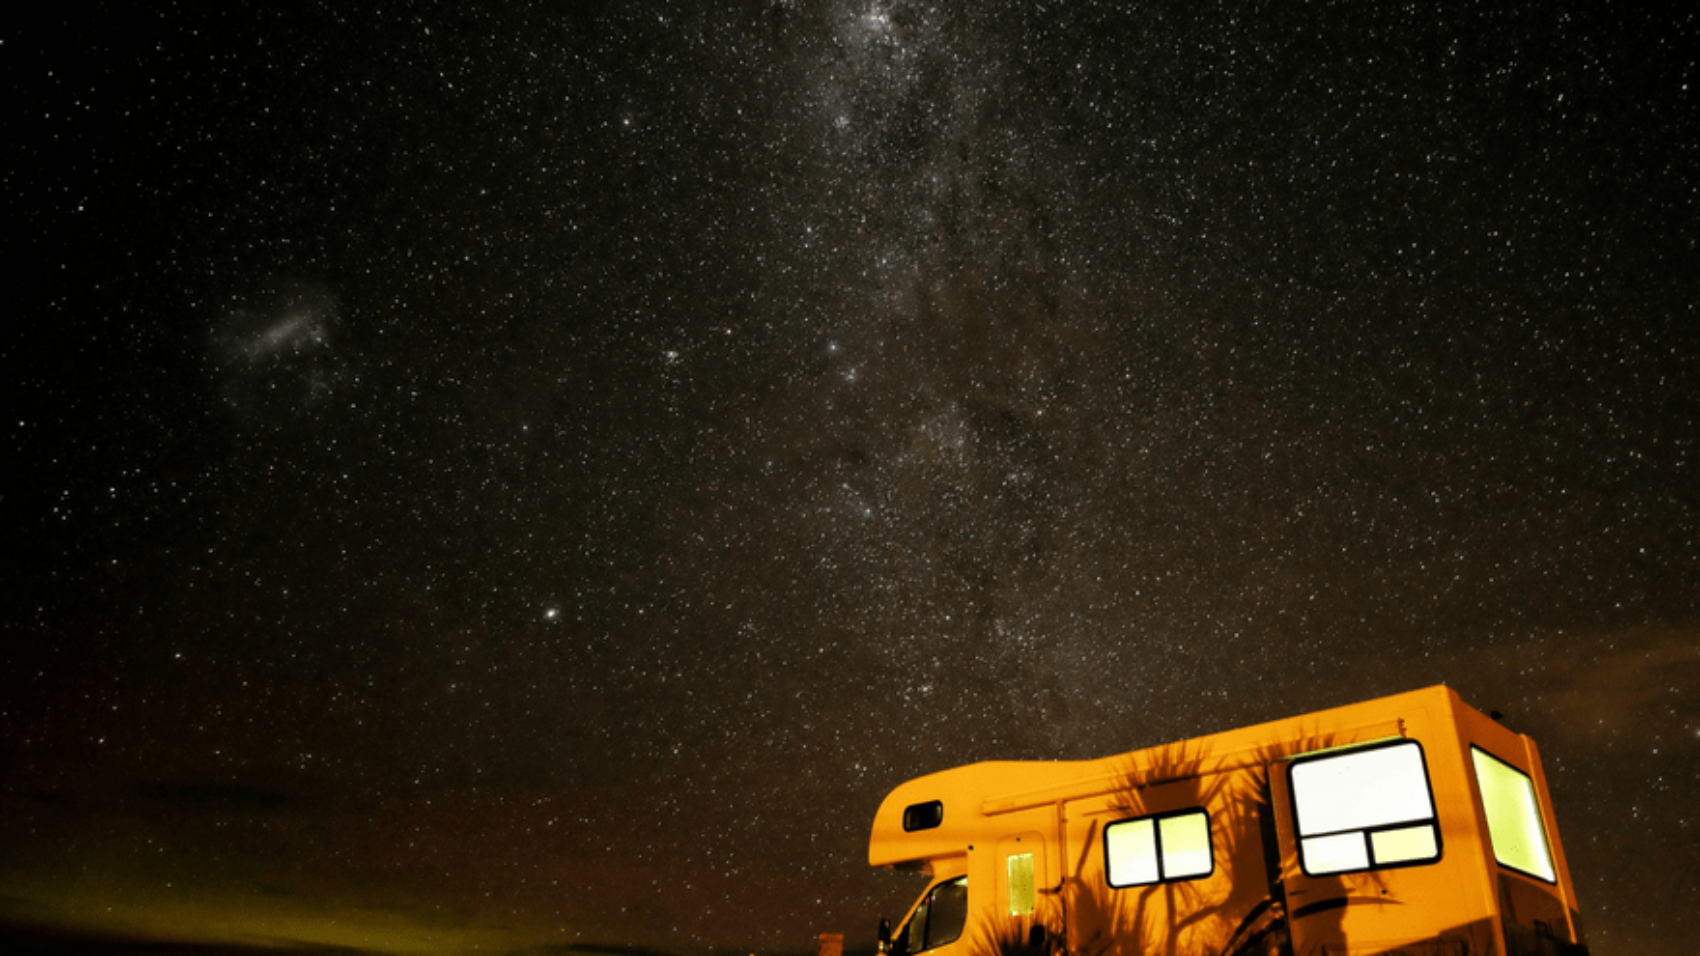 Finding Love and Commitment With Family Easily in an RV